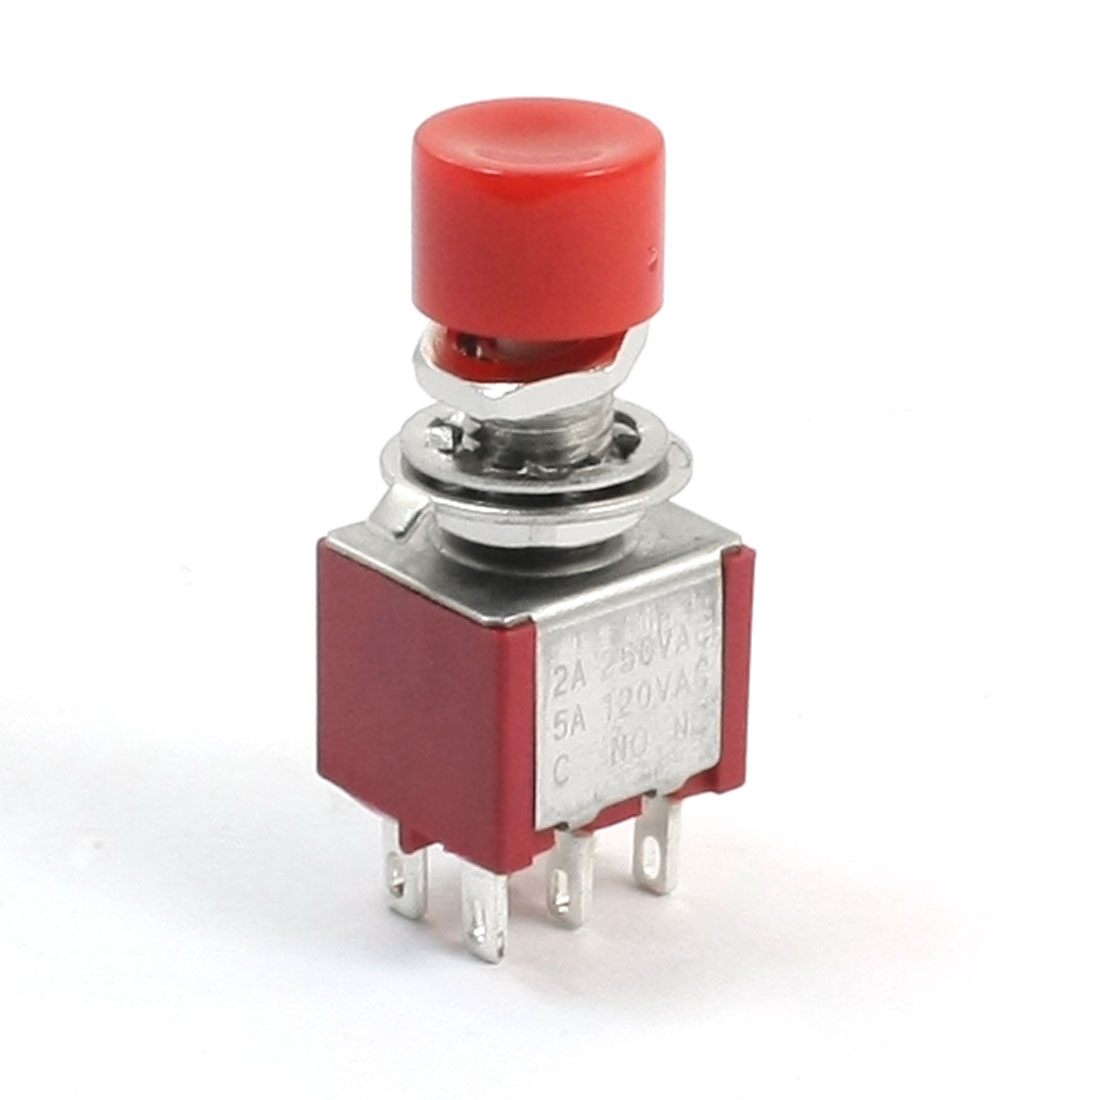 AC 120V 5A Red Cap 6 Pin DPDT 2 Positions Momentary Mini Push Button Switch